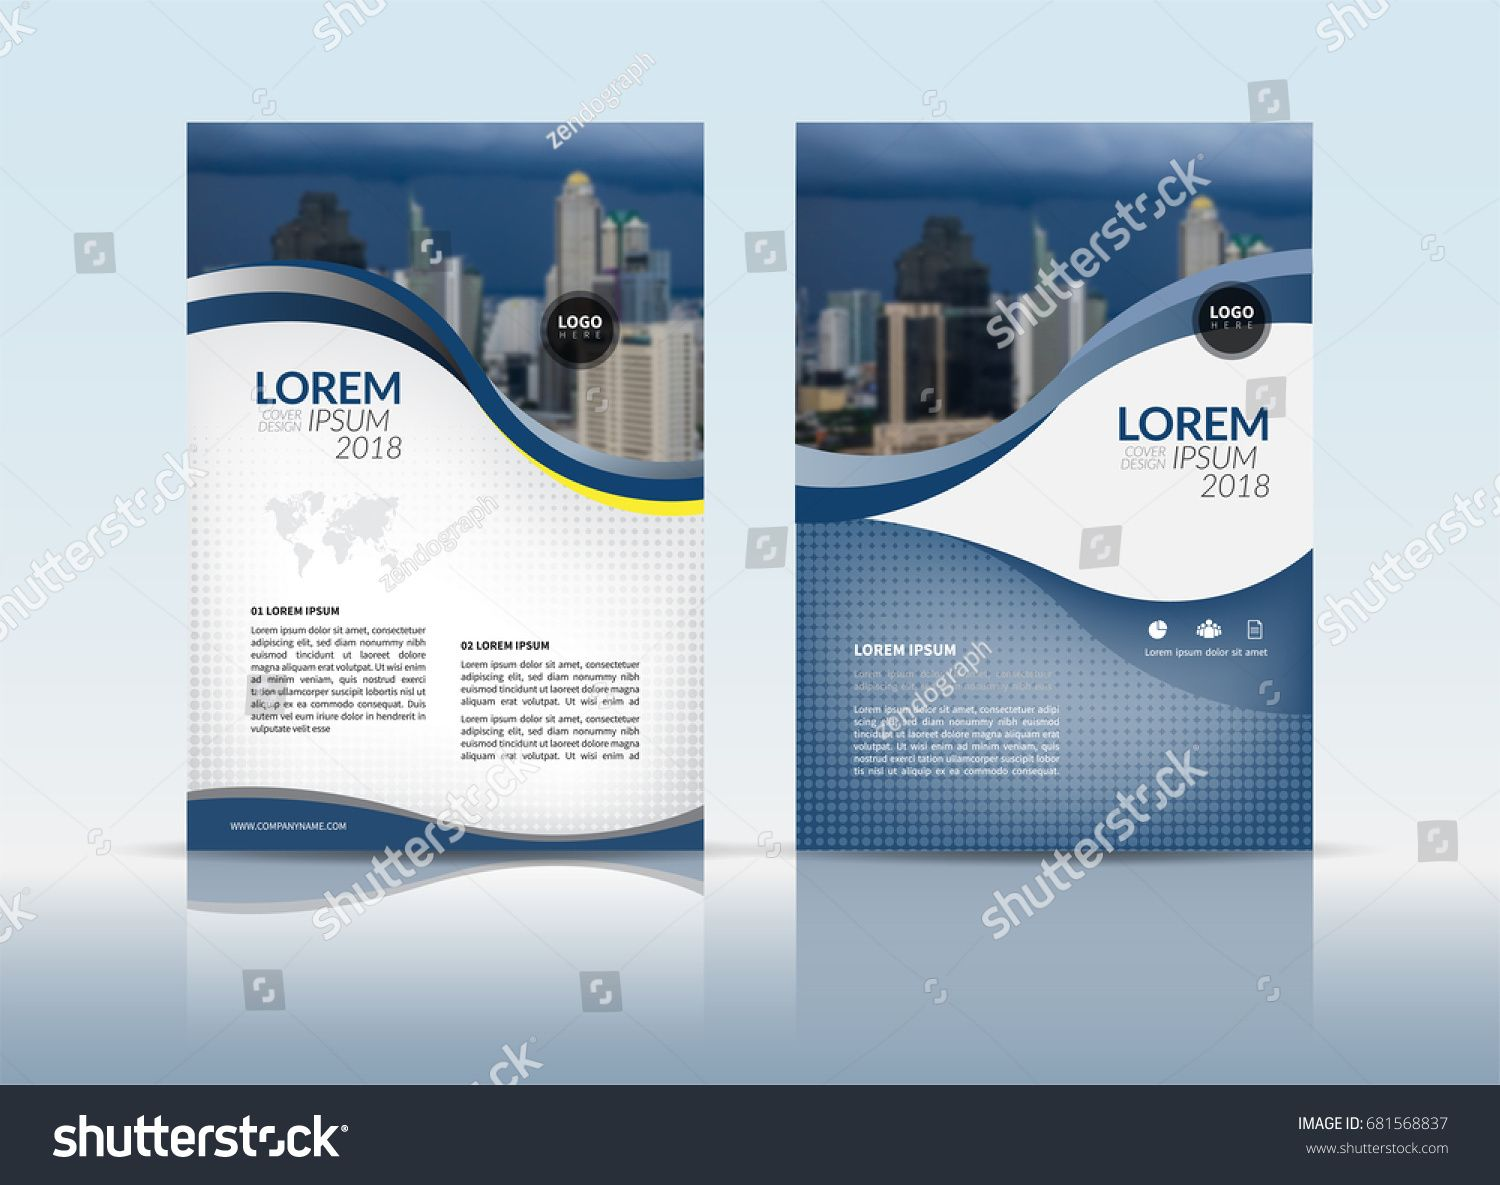 cover design, annual report cover, flyer, presentation, brochure, Presentation Front Page Template, Presentation templates